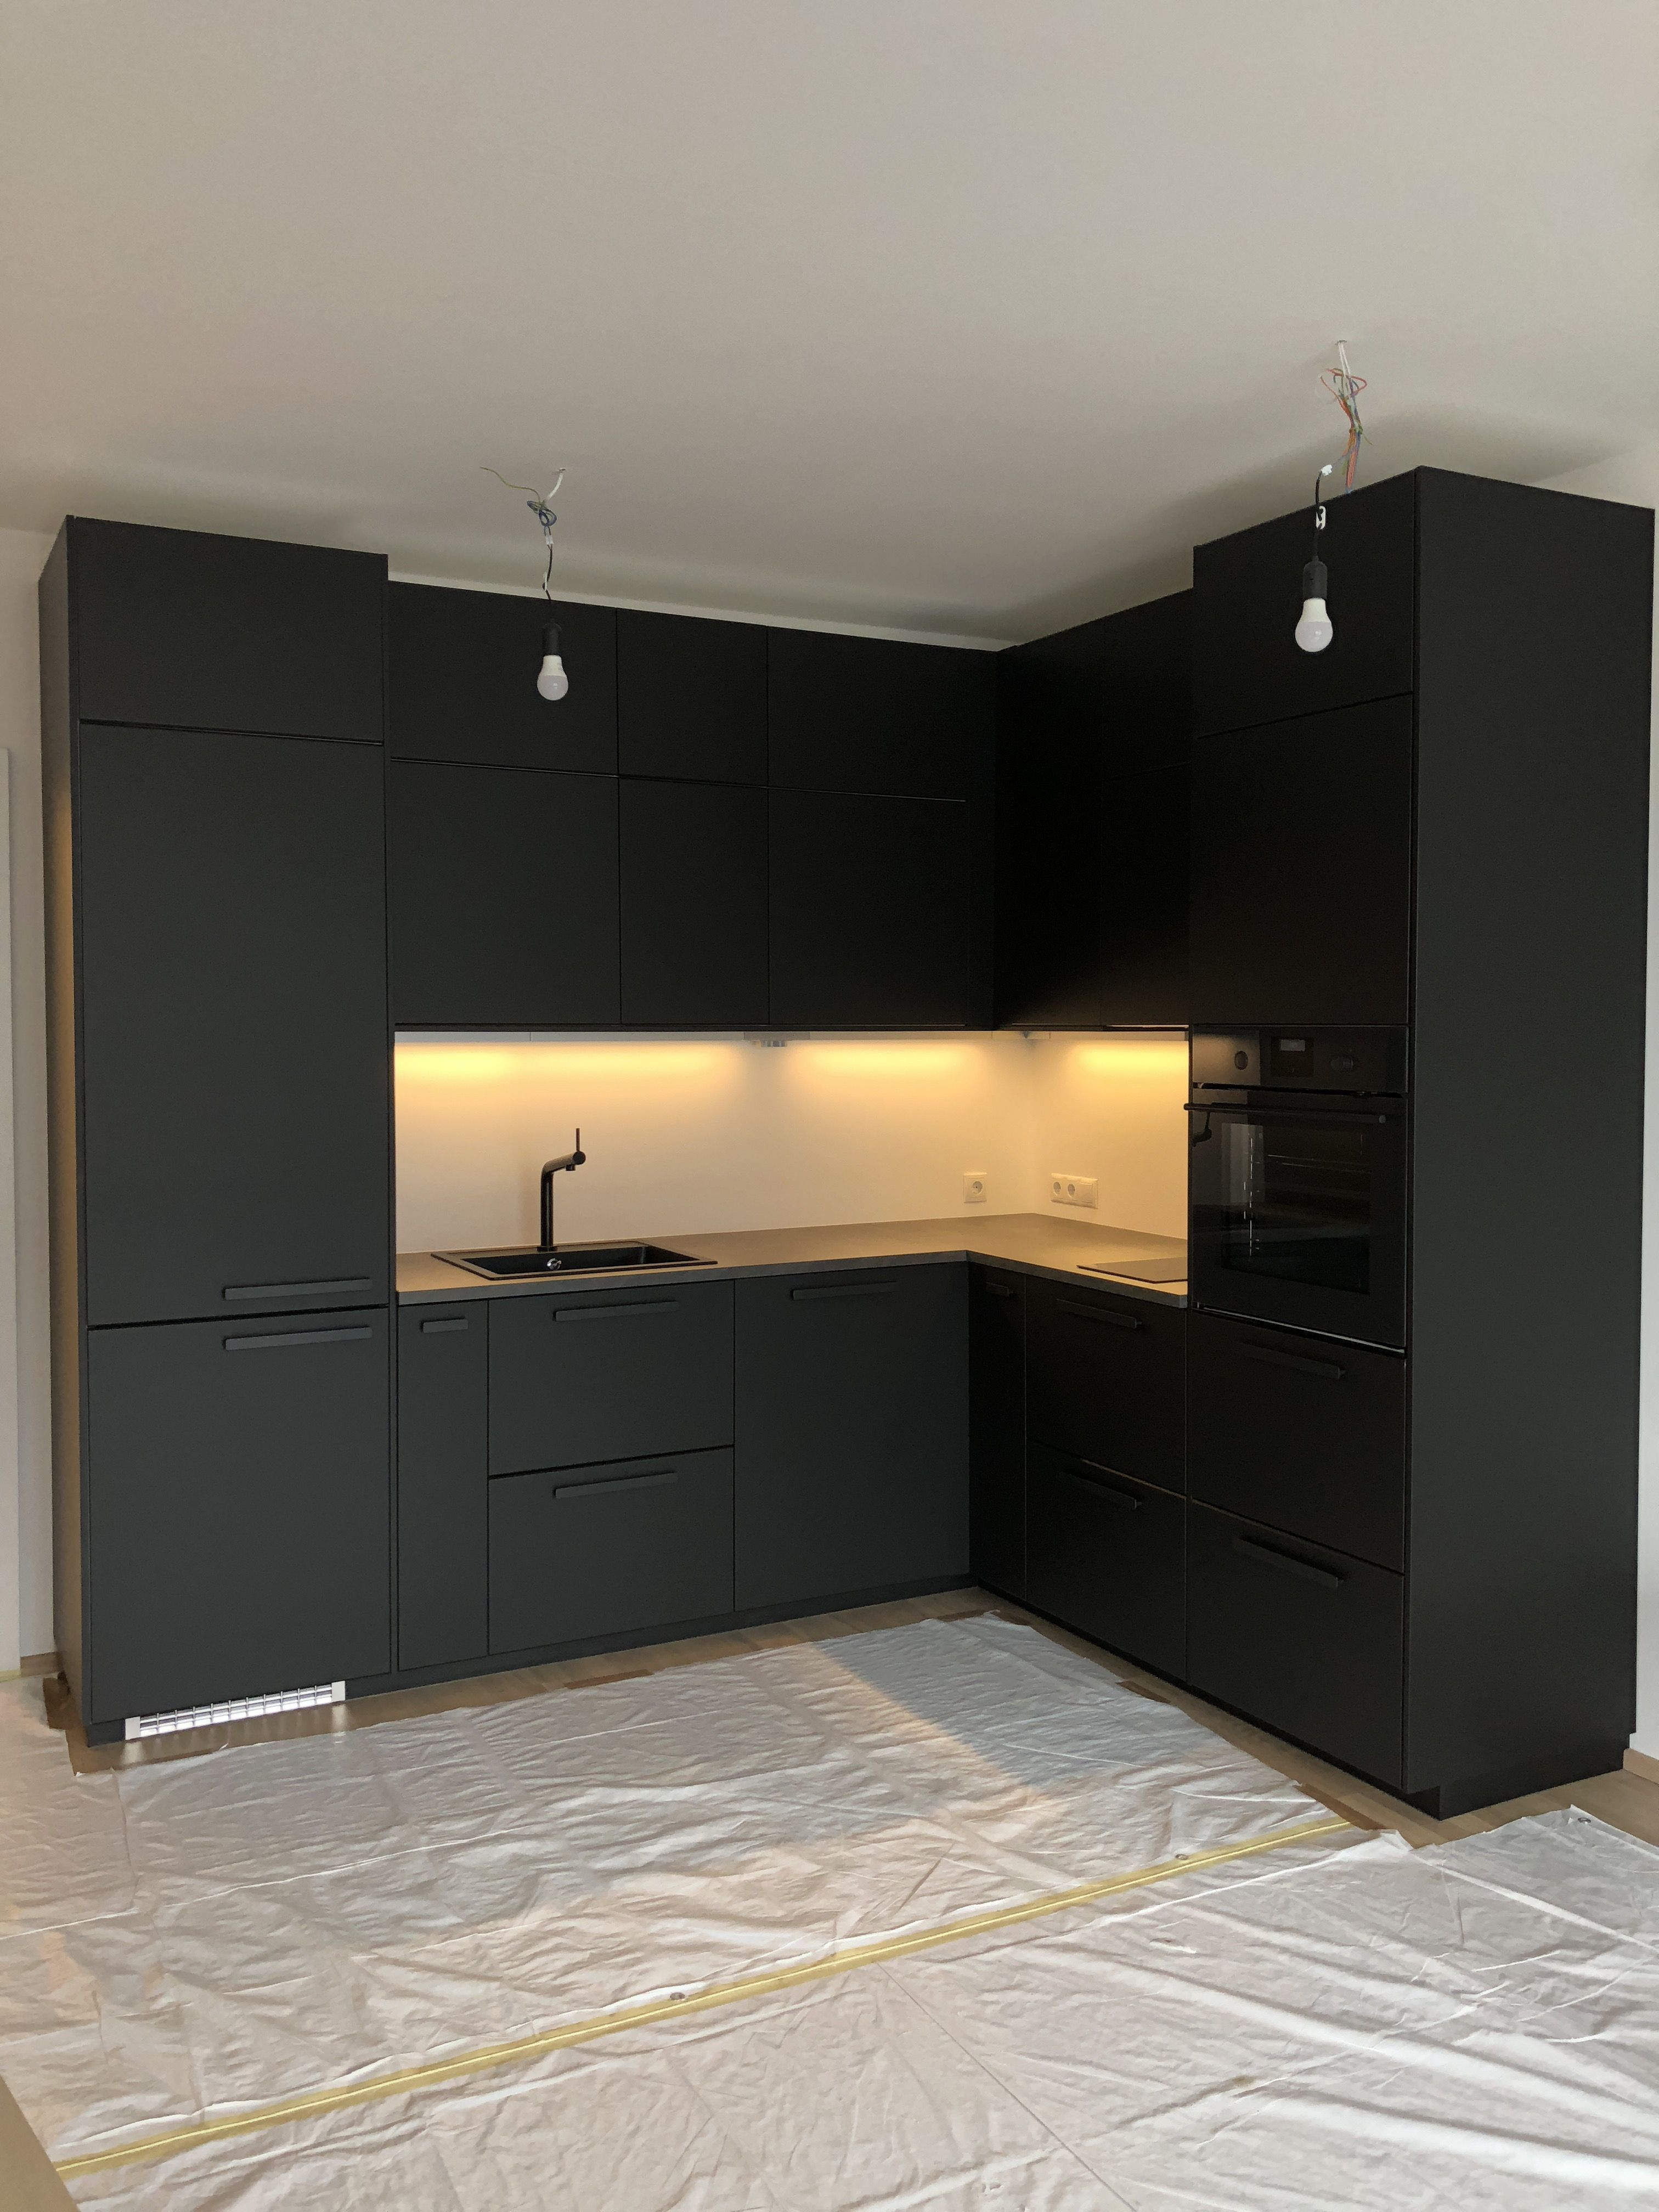 Your kitchen does not have to be big... As long as it's